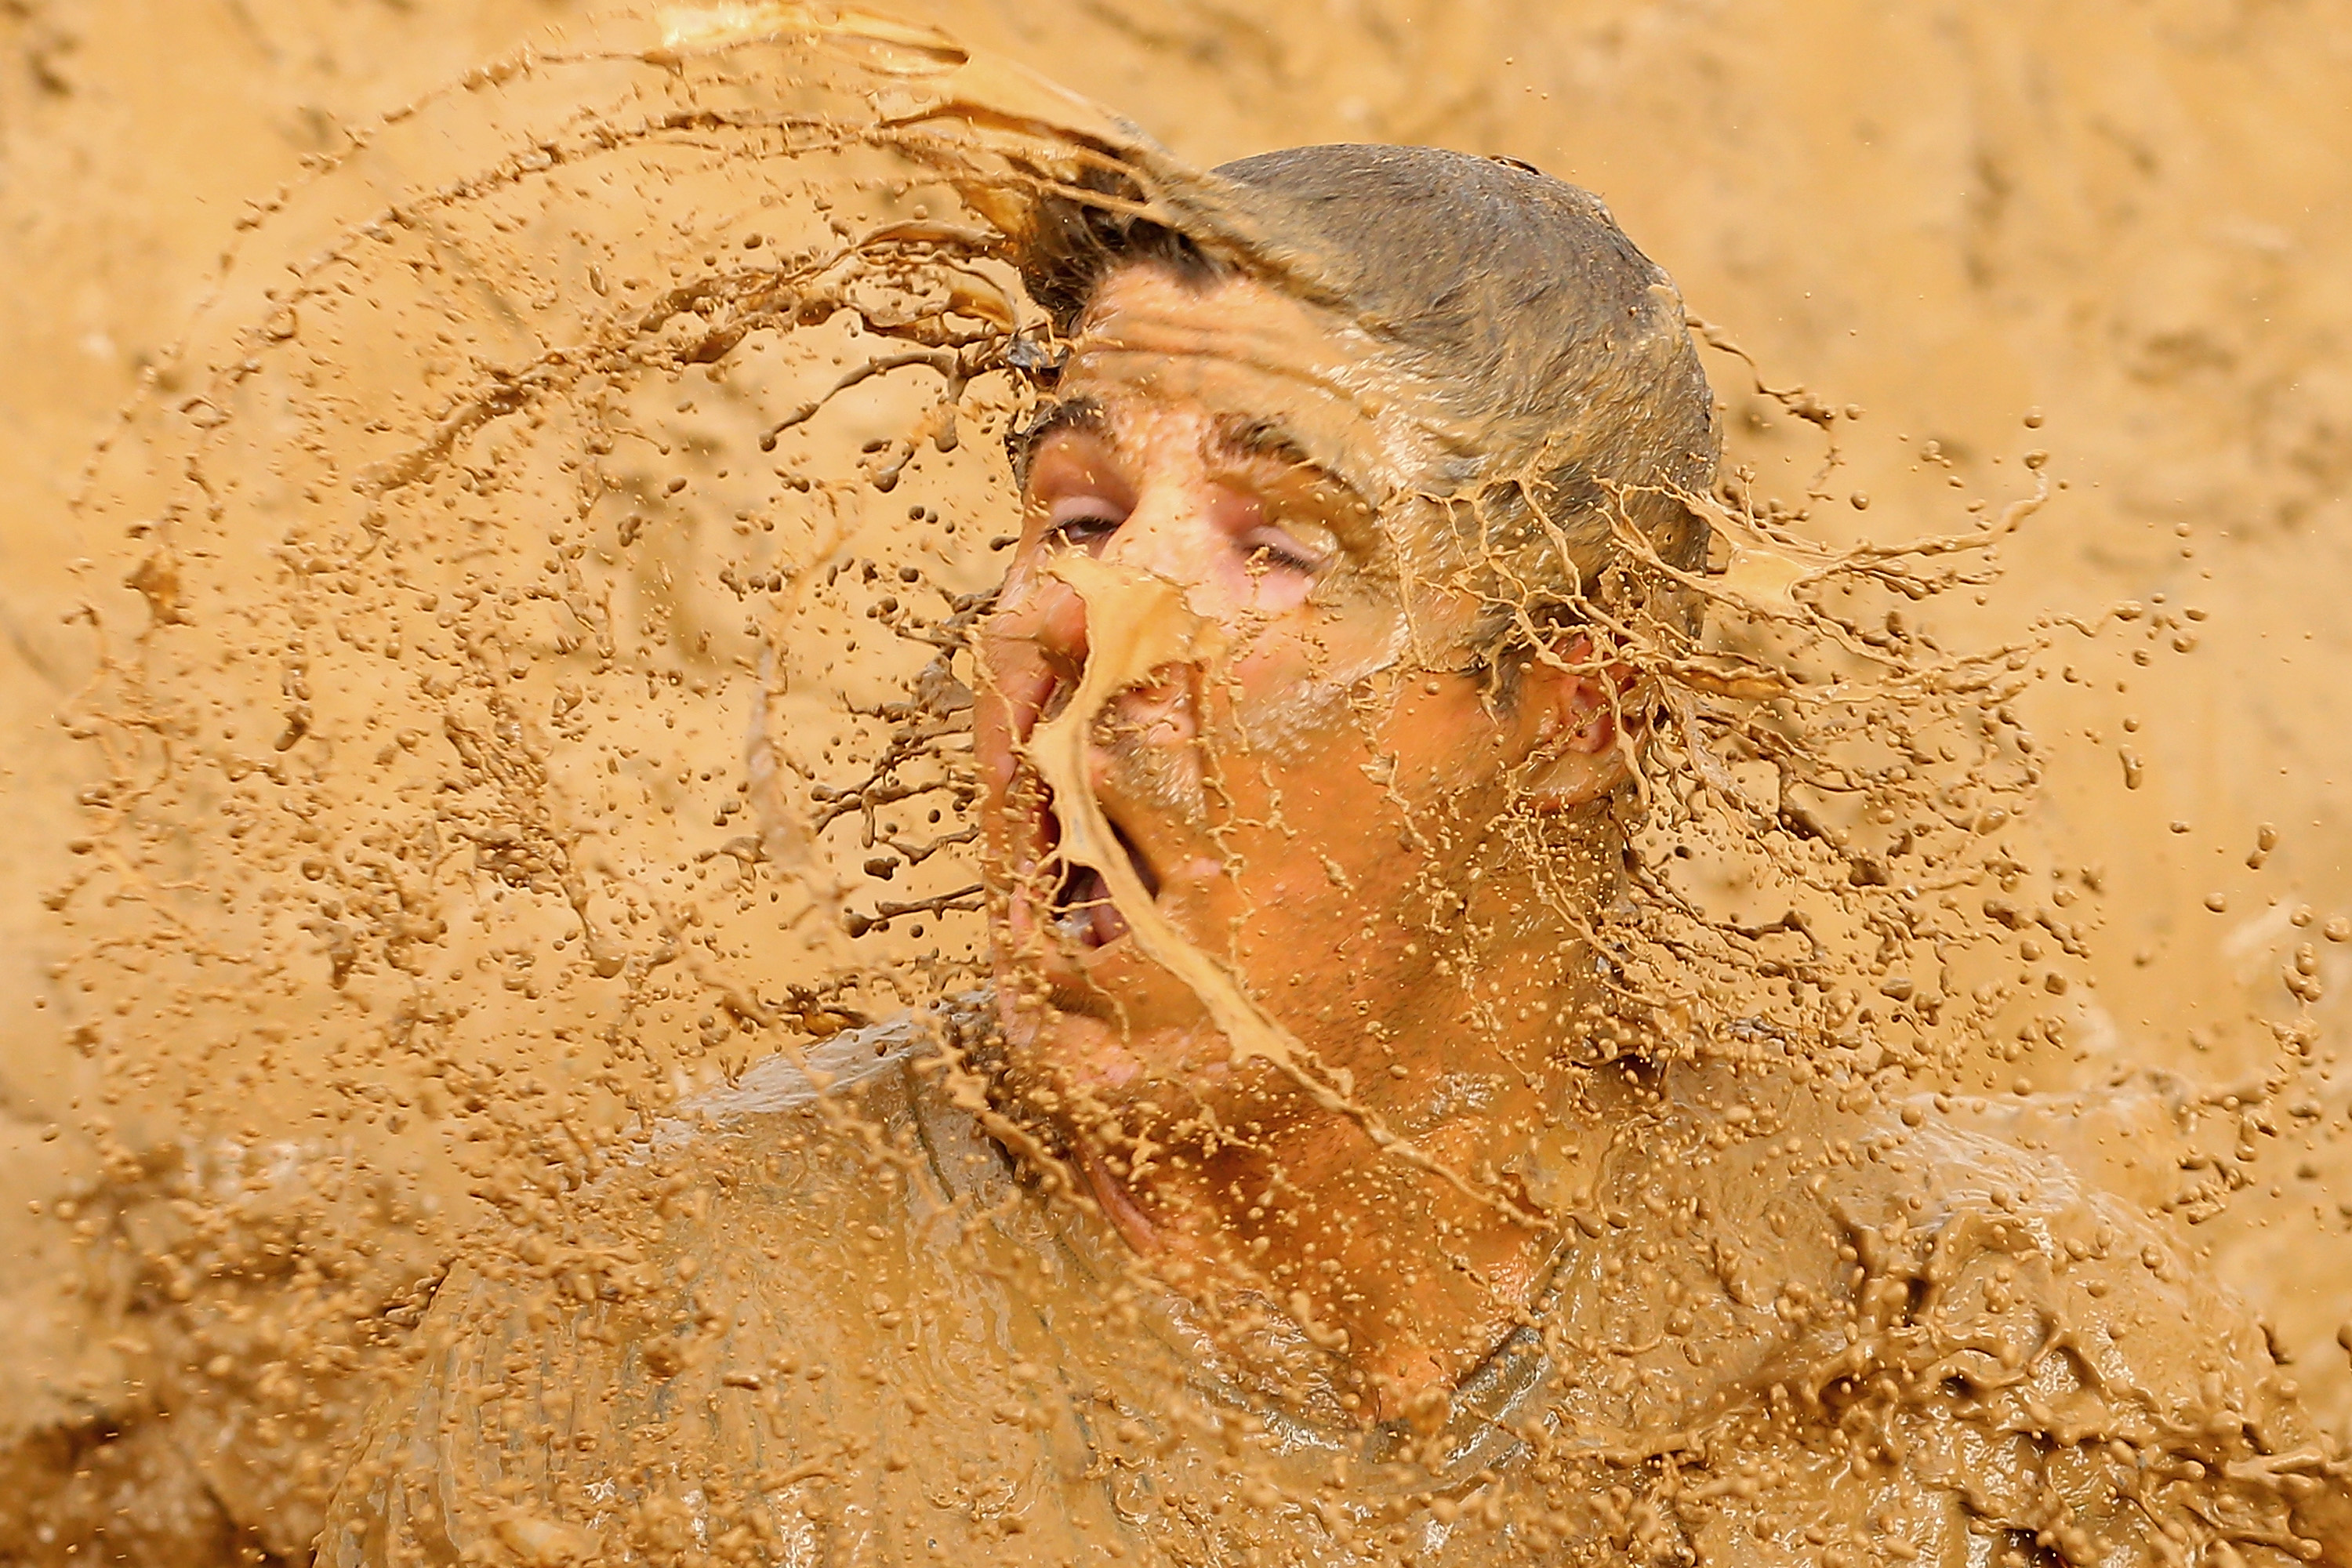 A competitor falls into muddy water during Toughmudder at Phillip Island Grand Prix Circuit on March 22, 2014 in Phillip Island, Australia.